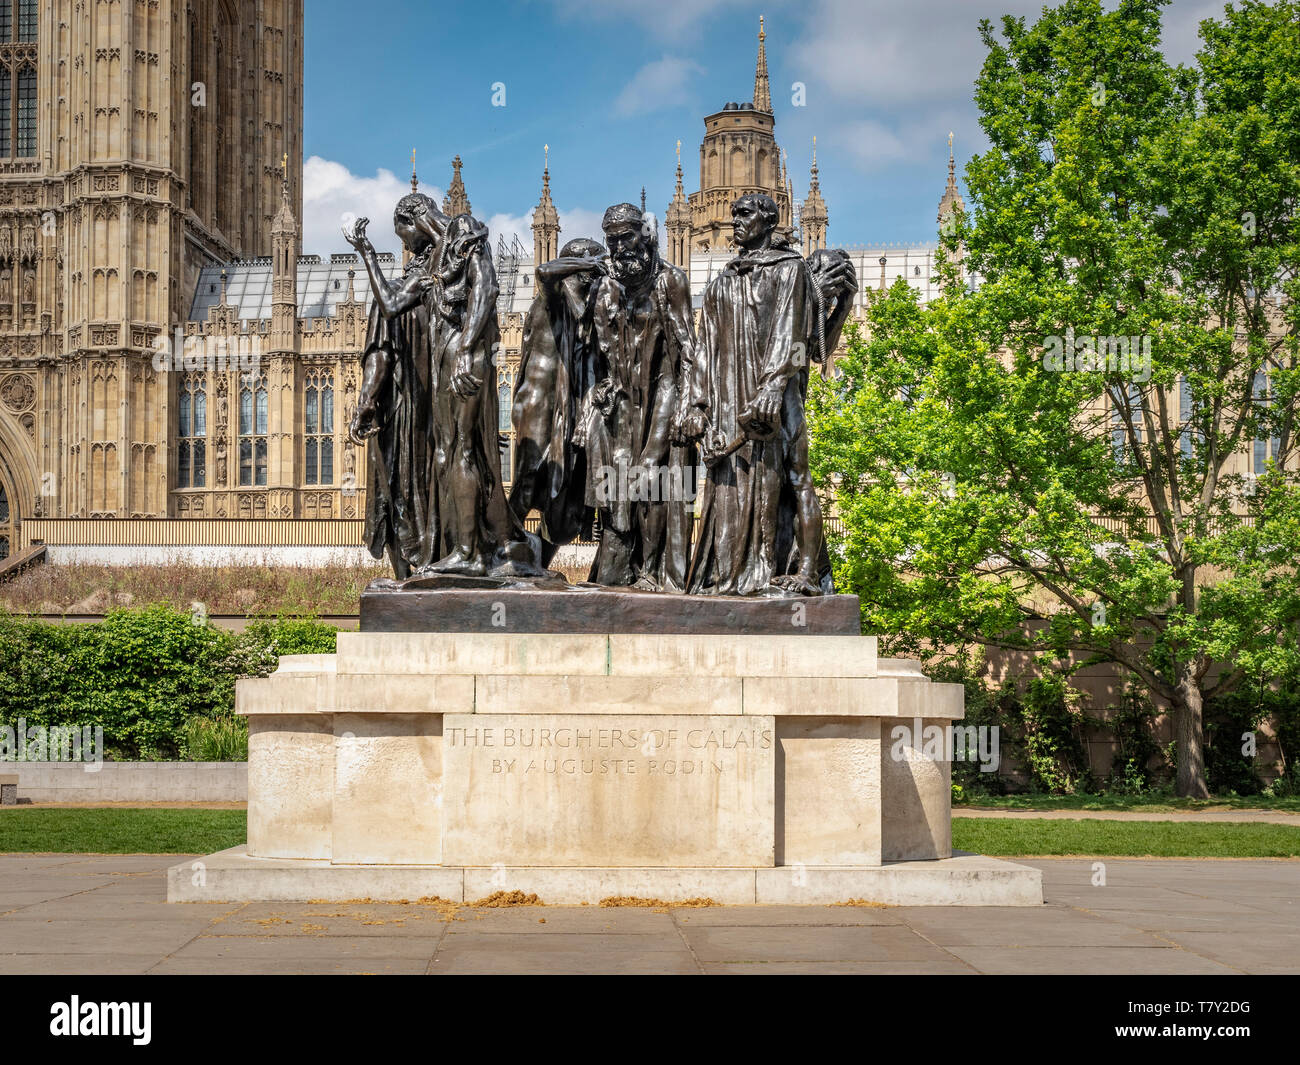 The Burghers of Calais (Les Bourgeois de Calais) bronze sculpture by Auguste Rodin 1889, Victoria Tower Gardens, London, UK.  Cast 1908, installed on  - Stock Image